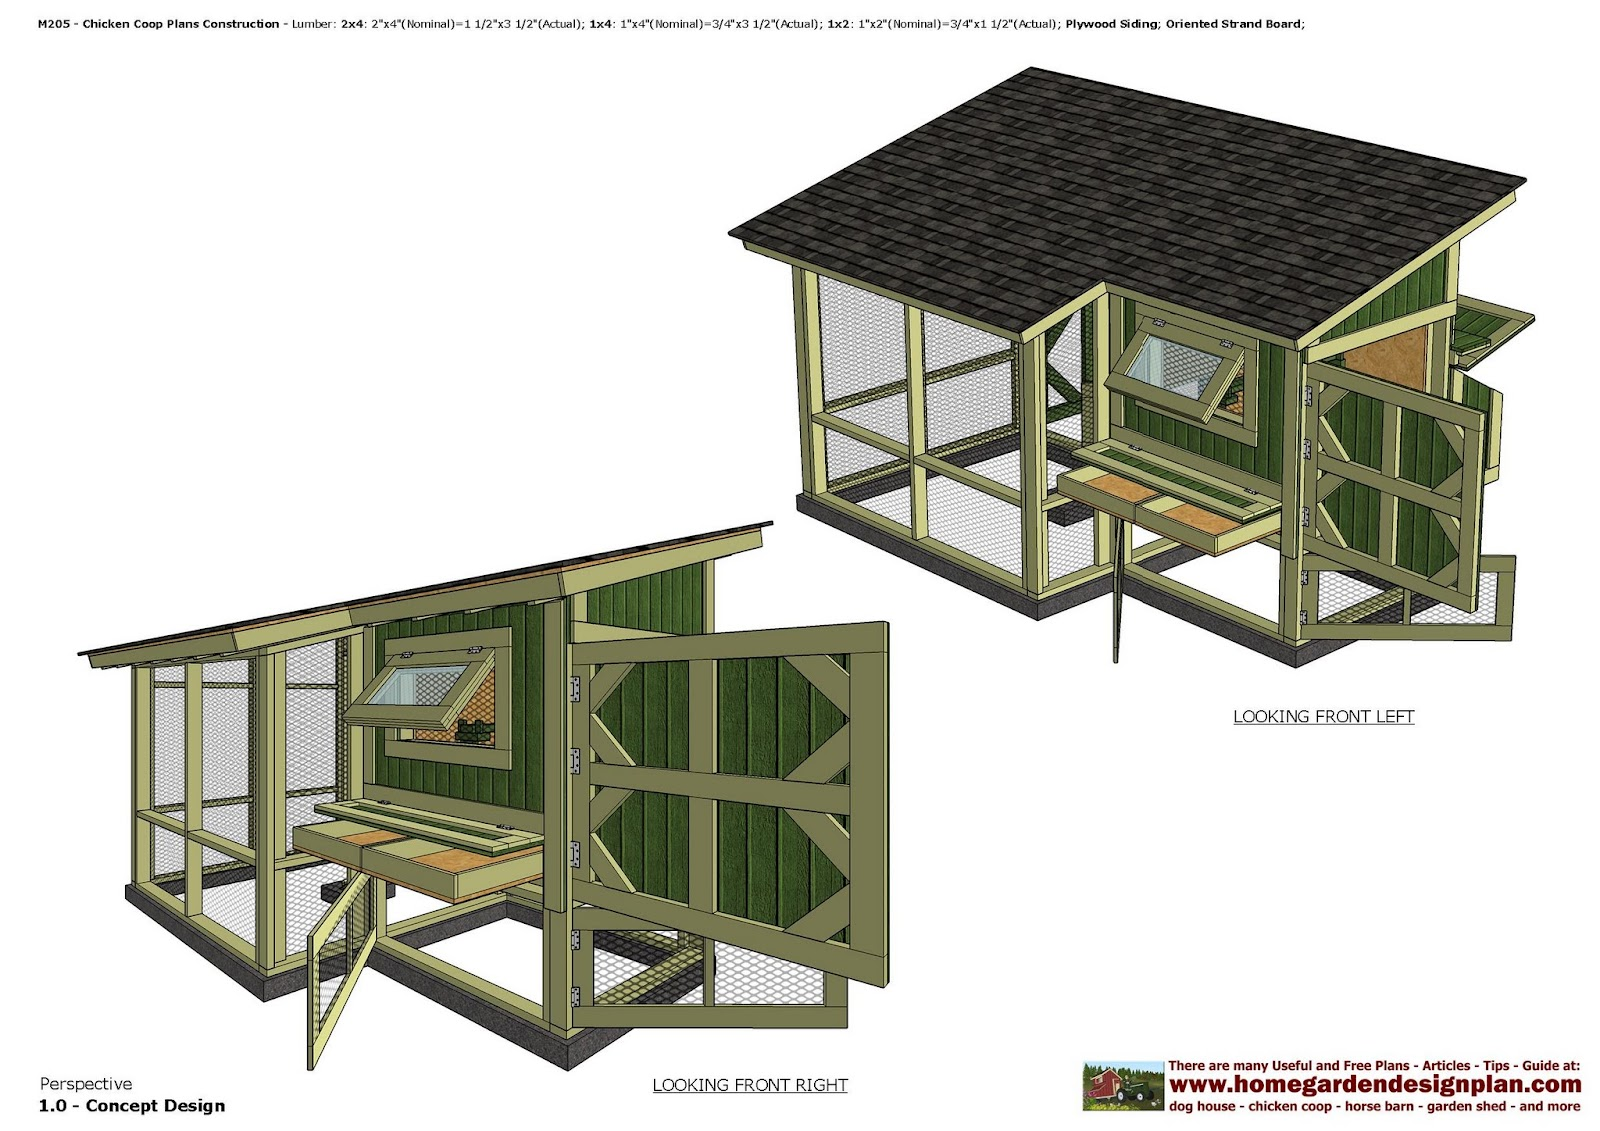 Home garden plans m205 chicken coop plans construction for Plans chicken coop